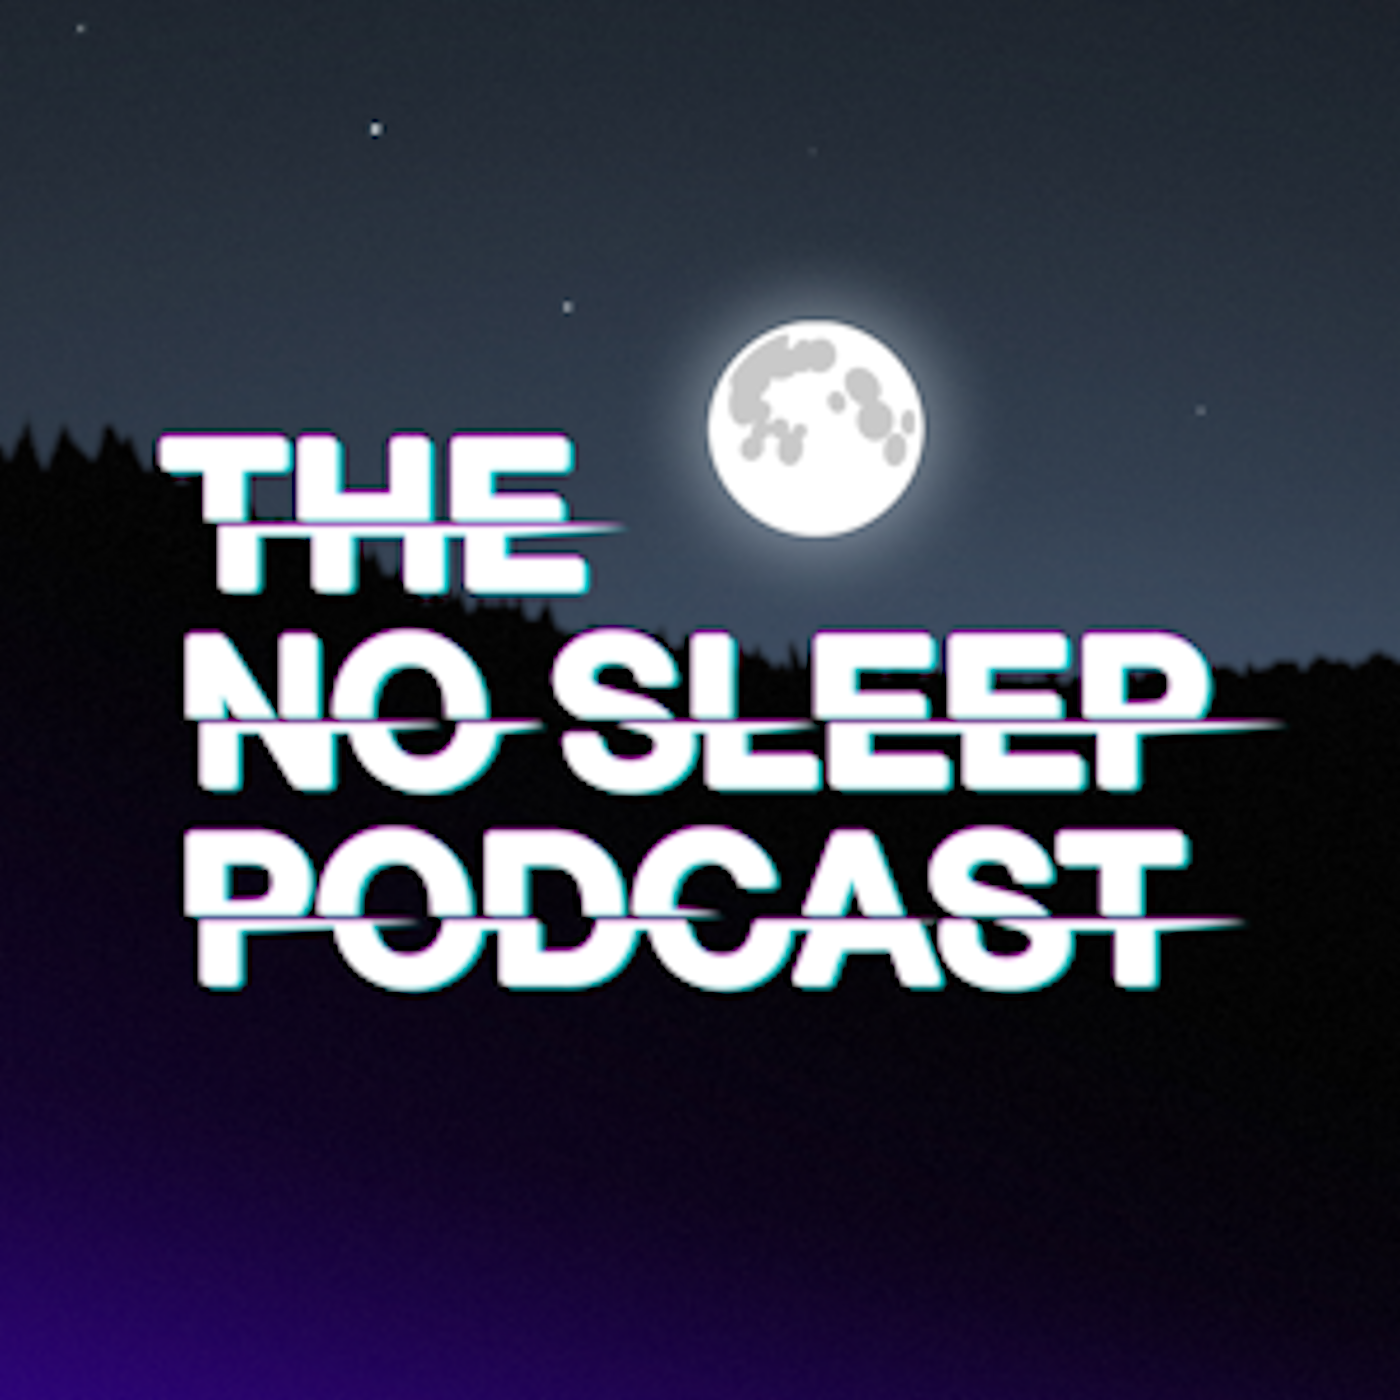 """The NoSleep Podcast"" Podcast"